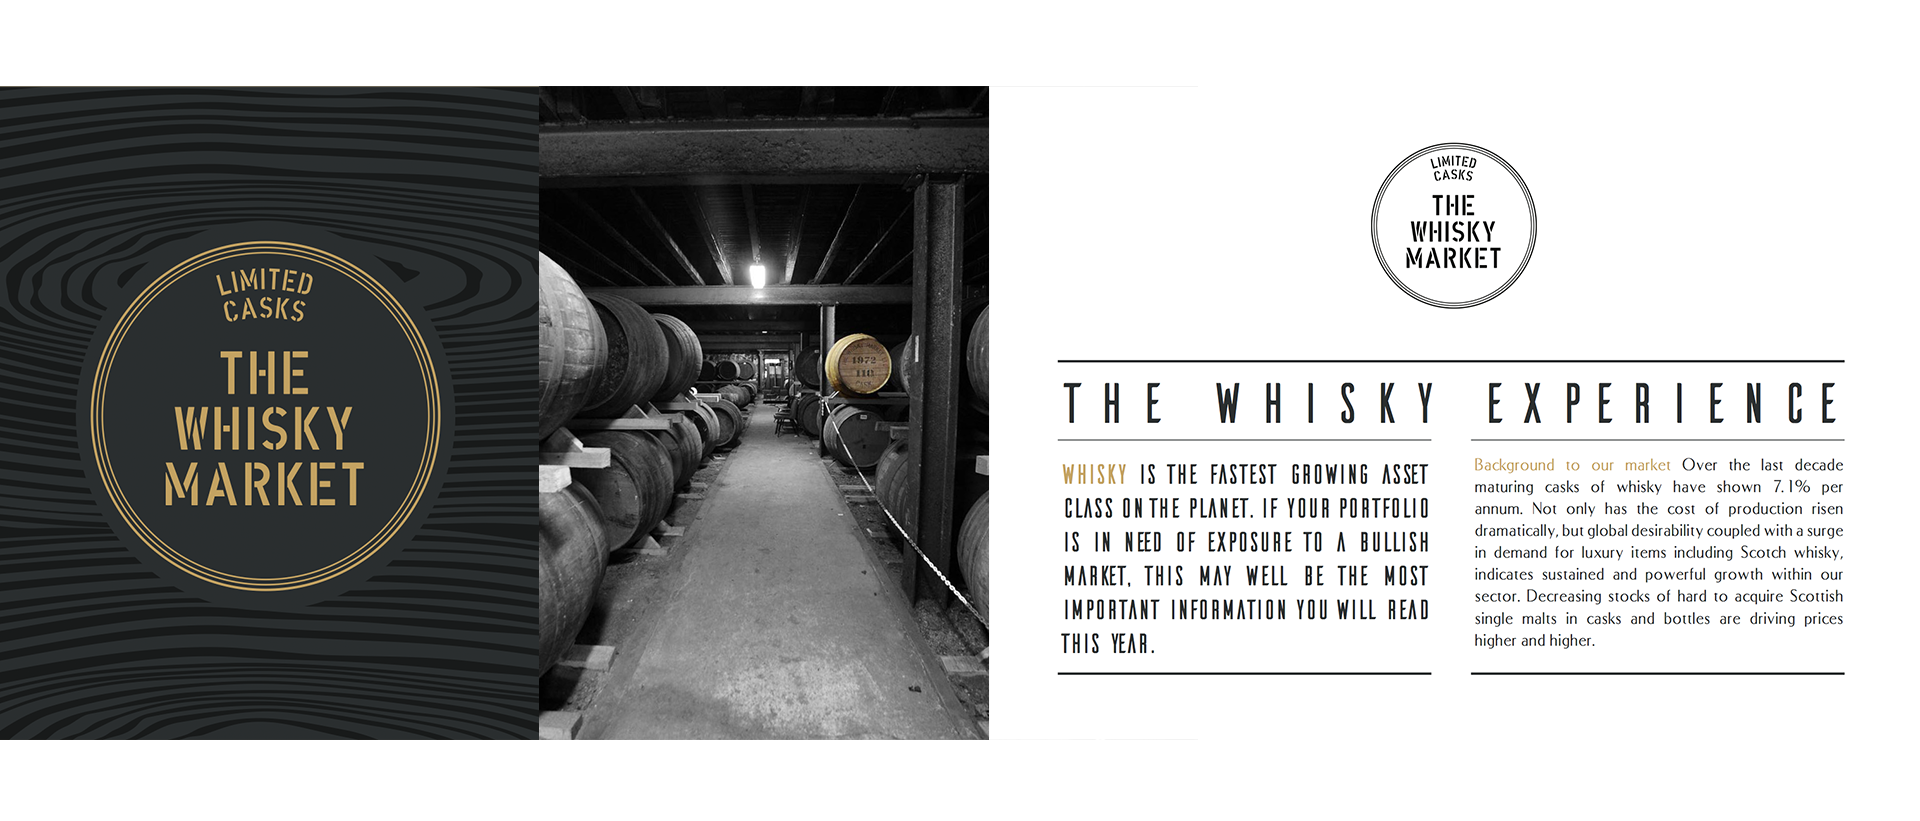 The Whisky Market Case Study